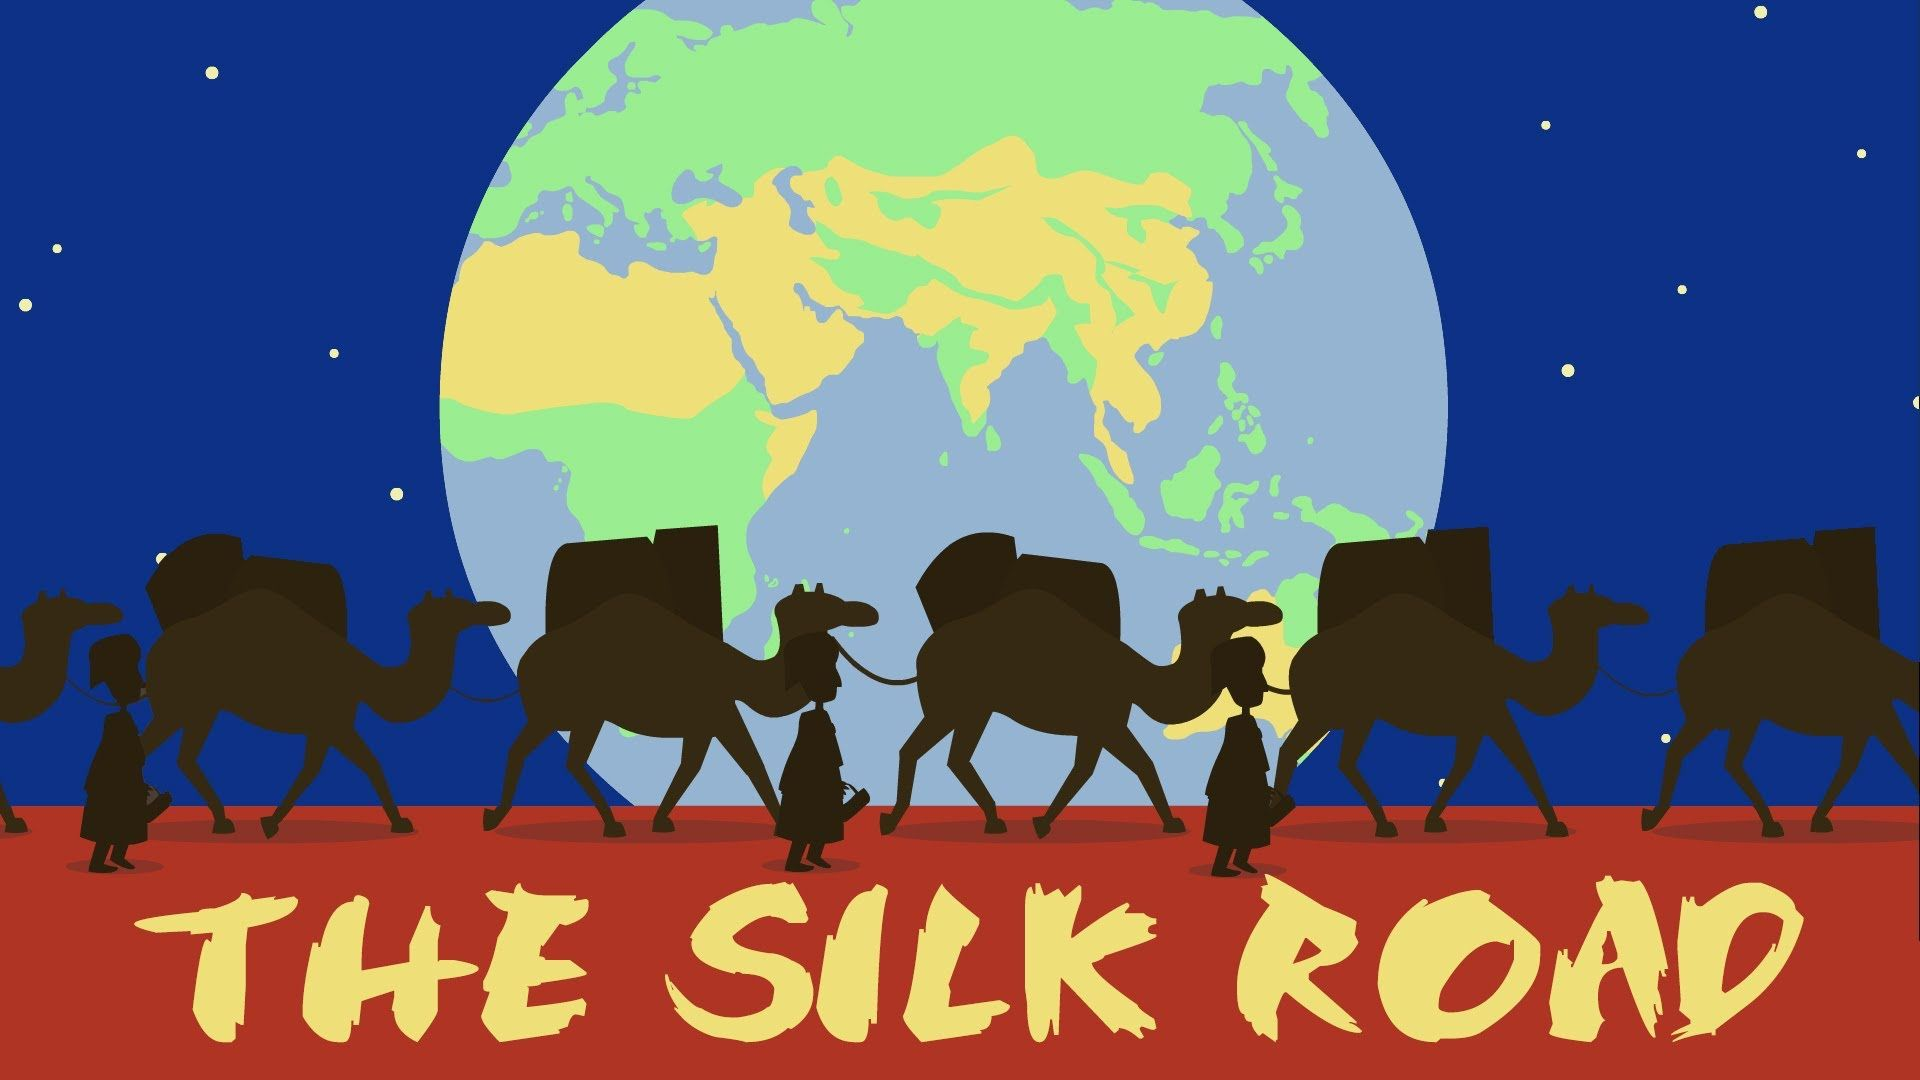 The Silk Road Connecting the ancient world through trade